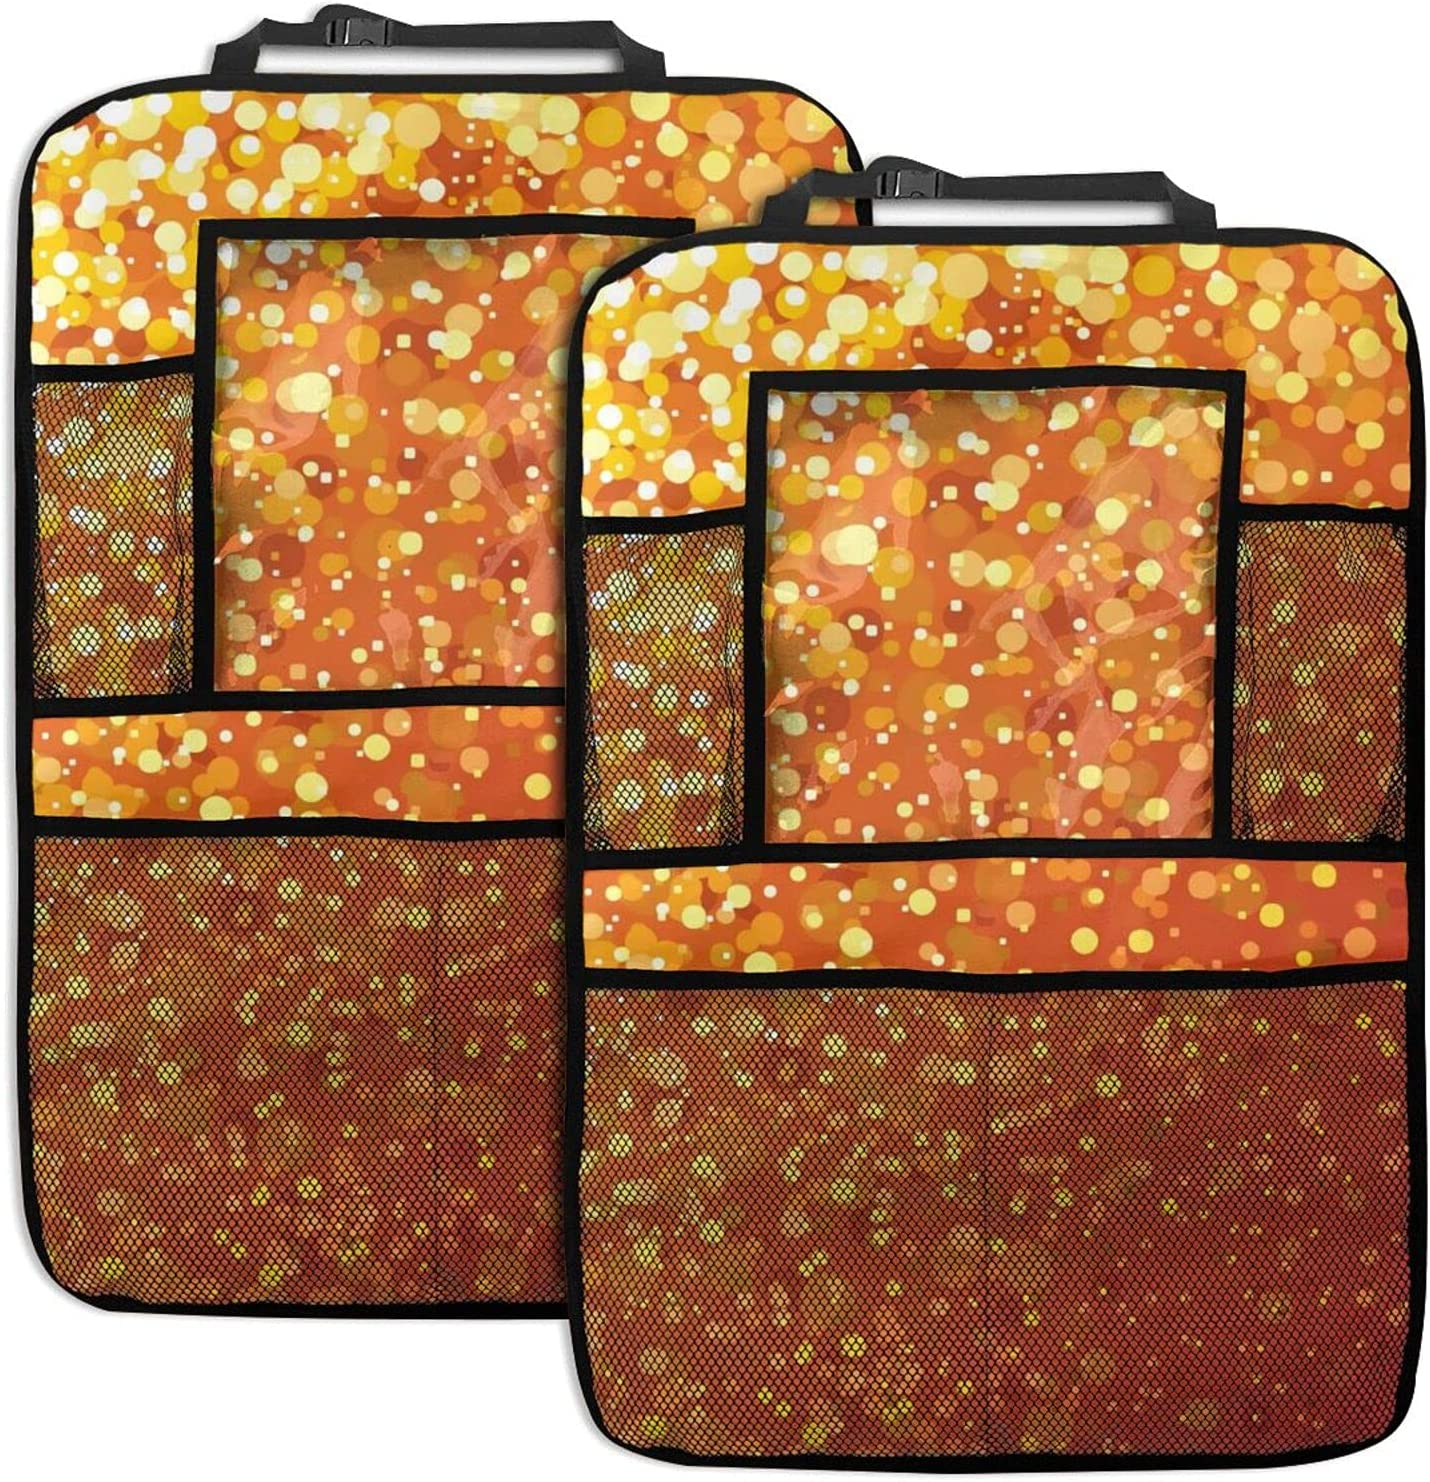 HSBHSJ Limited time cheap sale Glitter Car Free Shipping New Backseat Organizer Seat 2 Pack